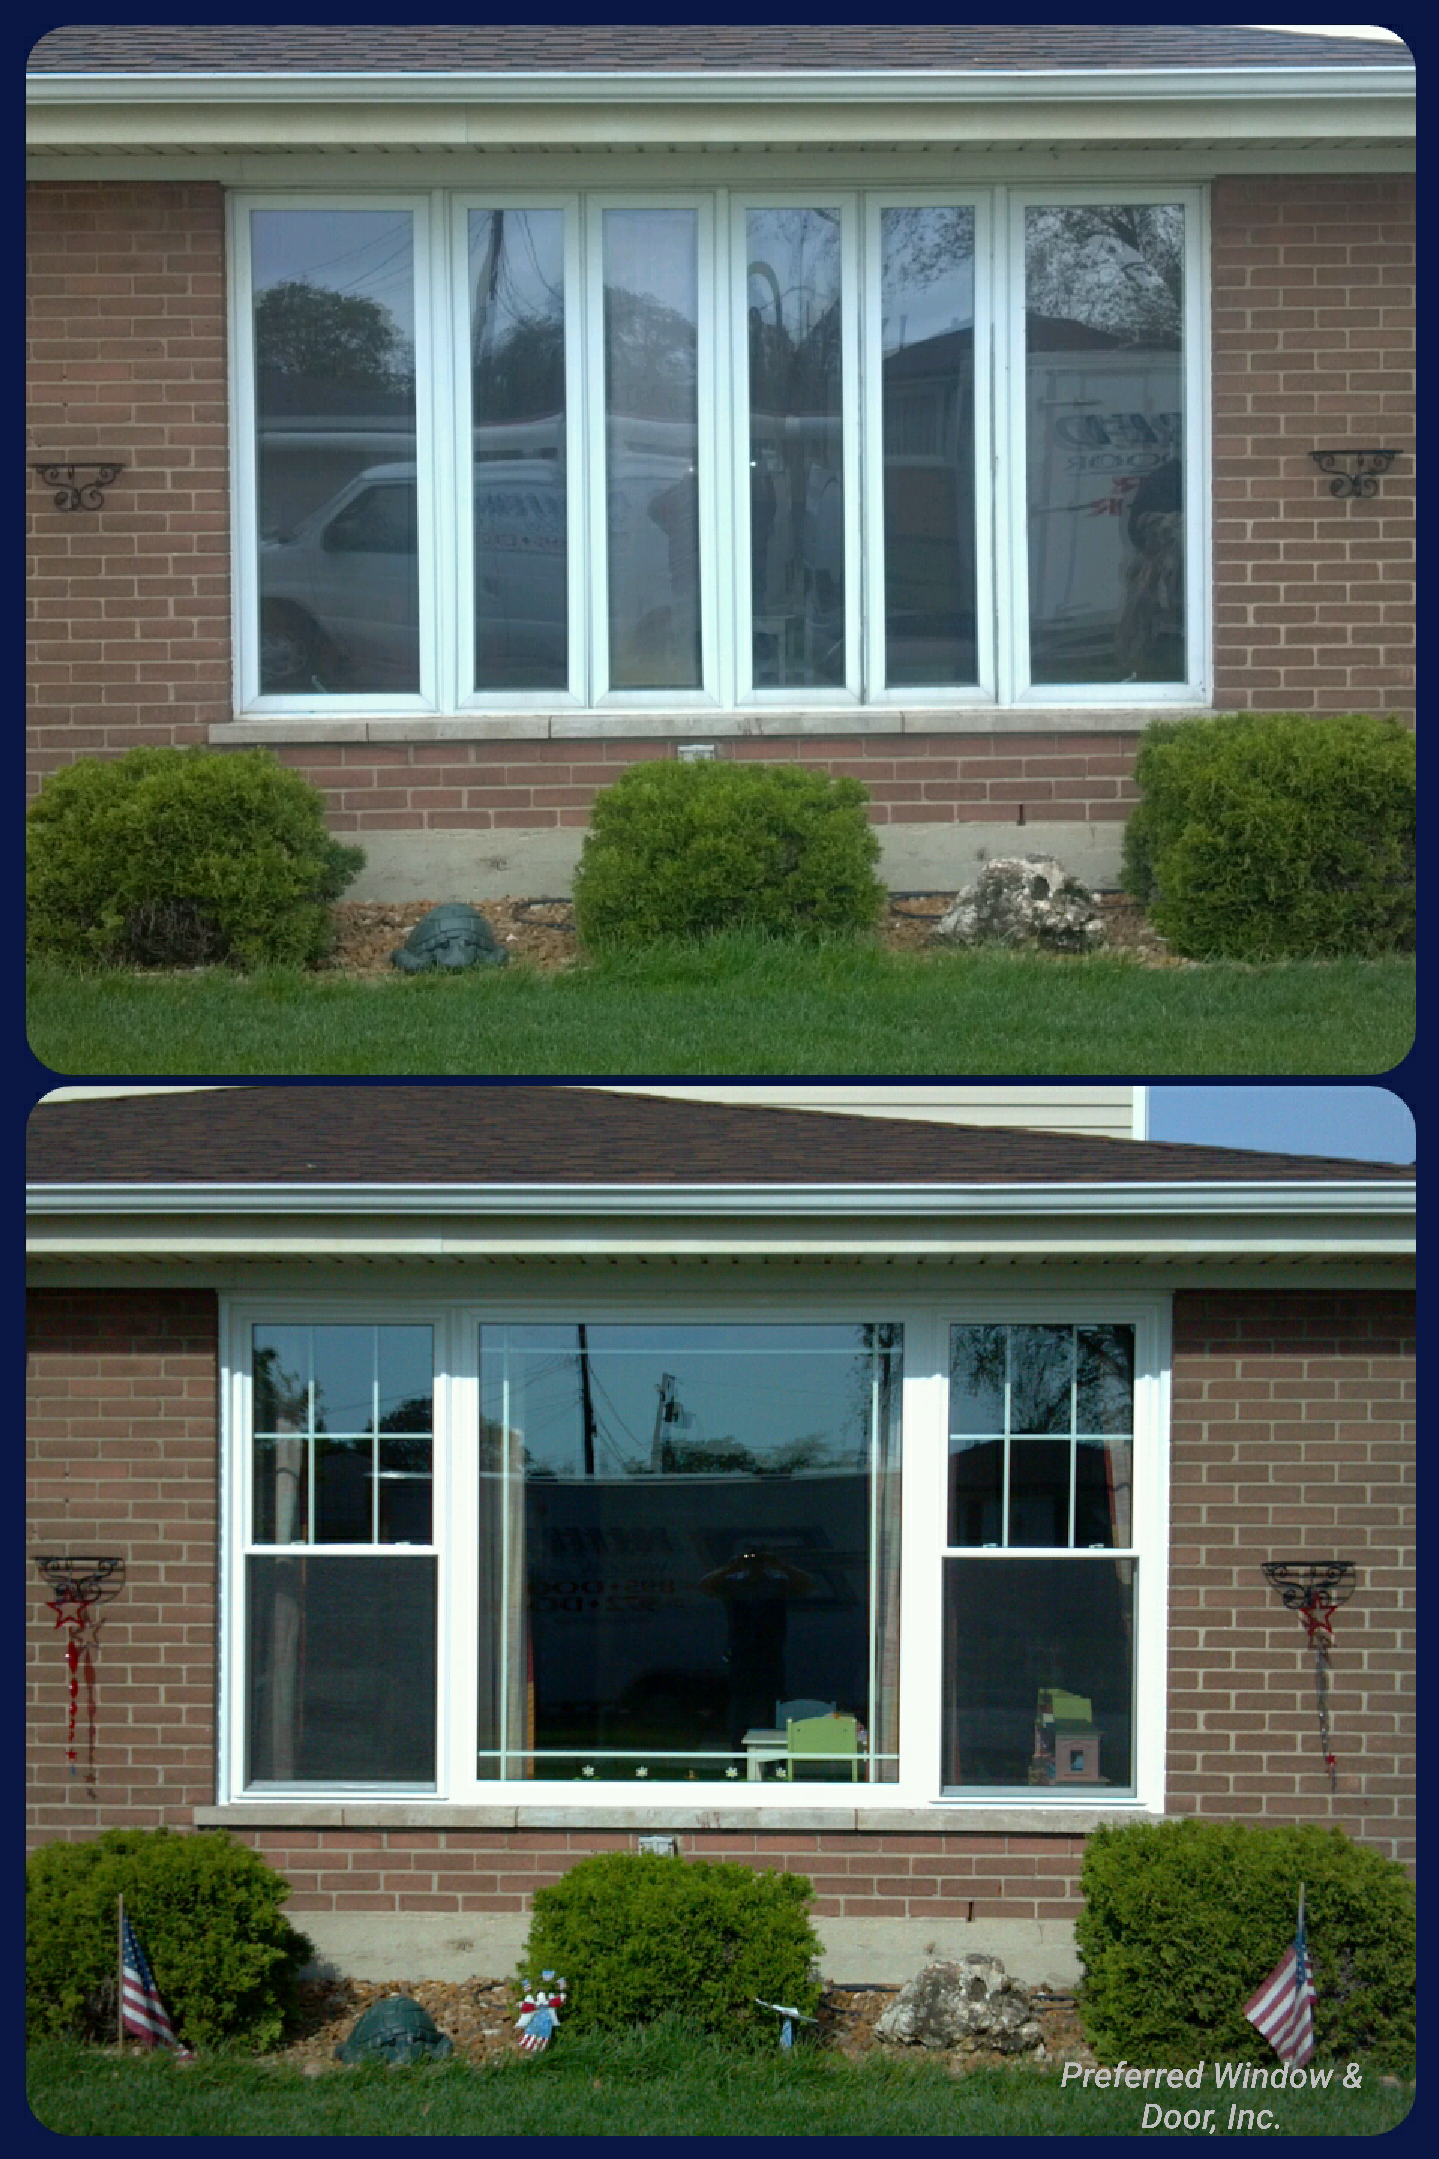 Exceptional Improve Your Window Arrangement! Preferred Window And Door Does Free  Consultations U0026 Will Give You